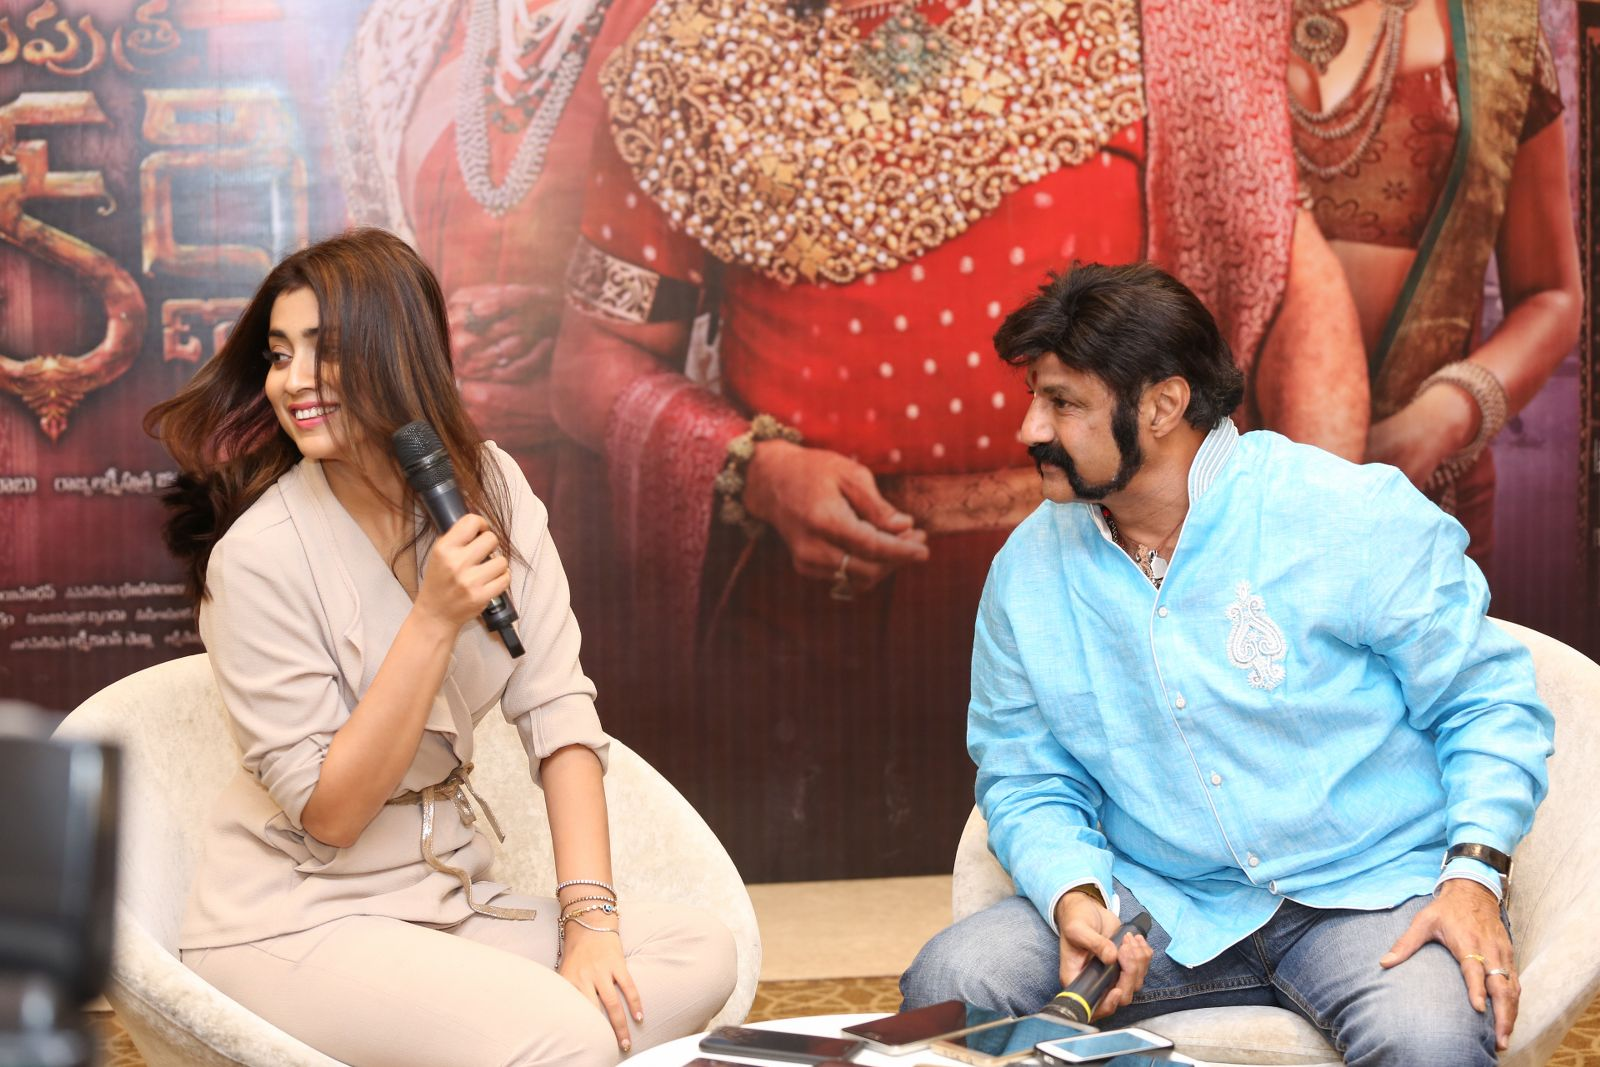 Brand new photo stills From the recent promotional event of Gautamiputra Satakarni   Gautamiputra Satakarni Brand New Stills From Promotional Event of Gautamiputra Satakarni GPSK Shriya Saran Balakrishna 1